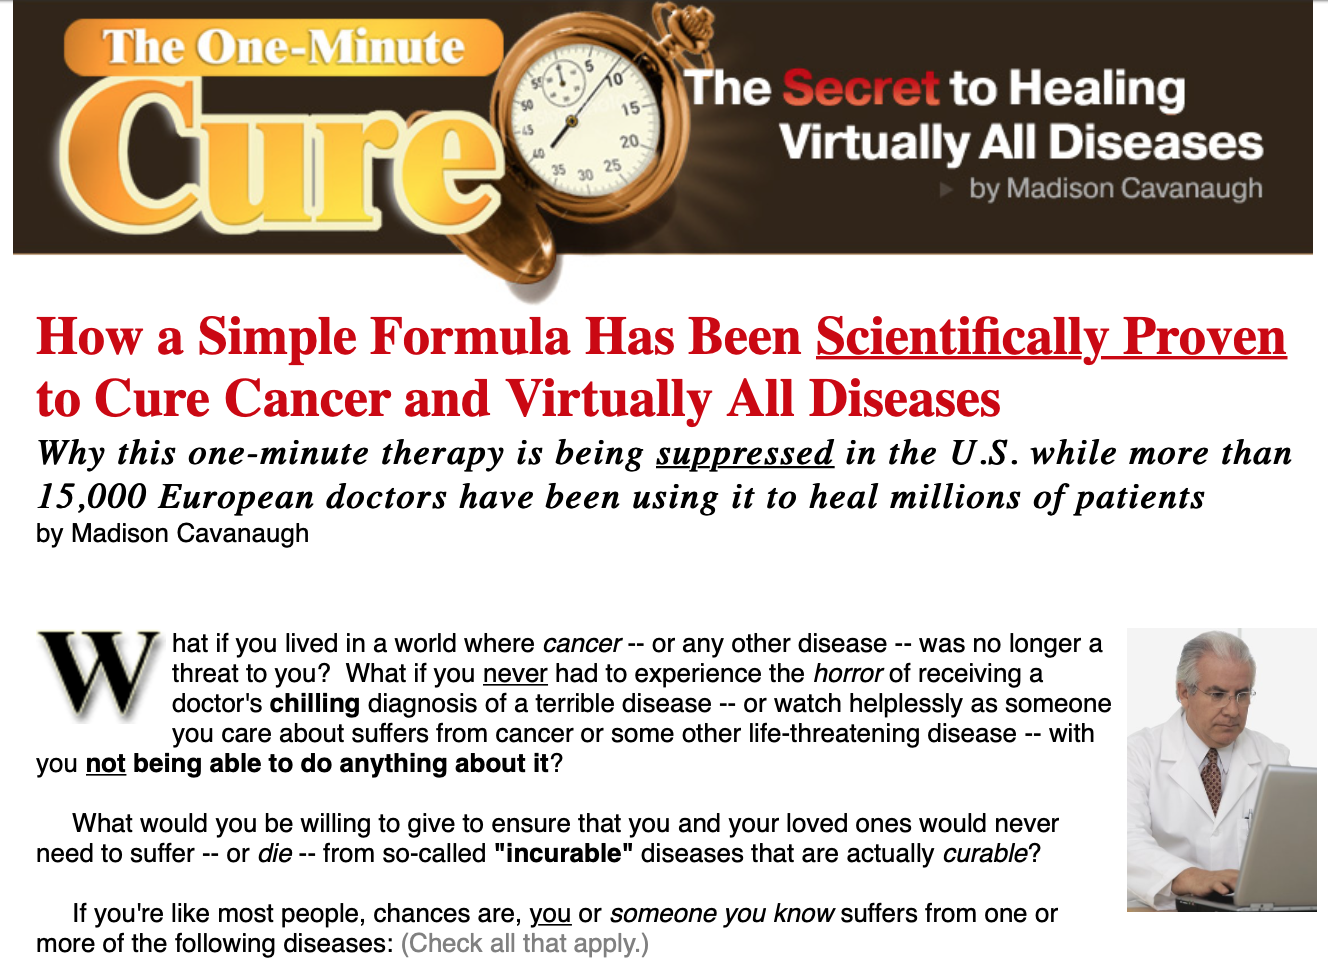 The One-Minute Cure4